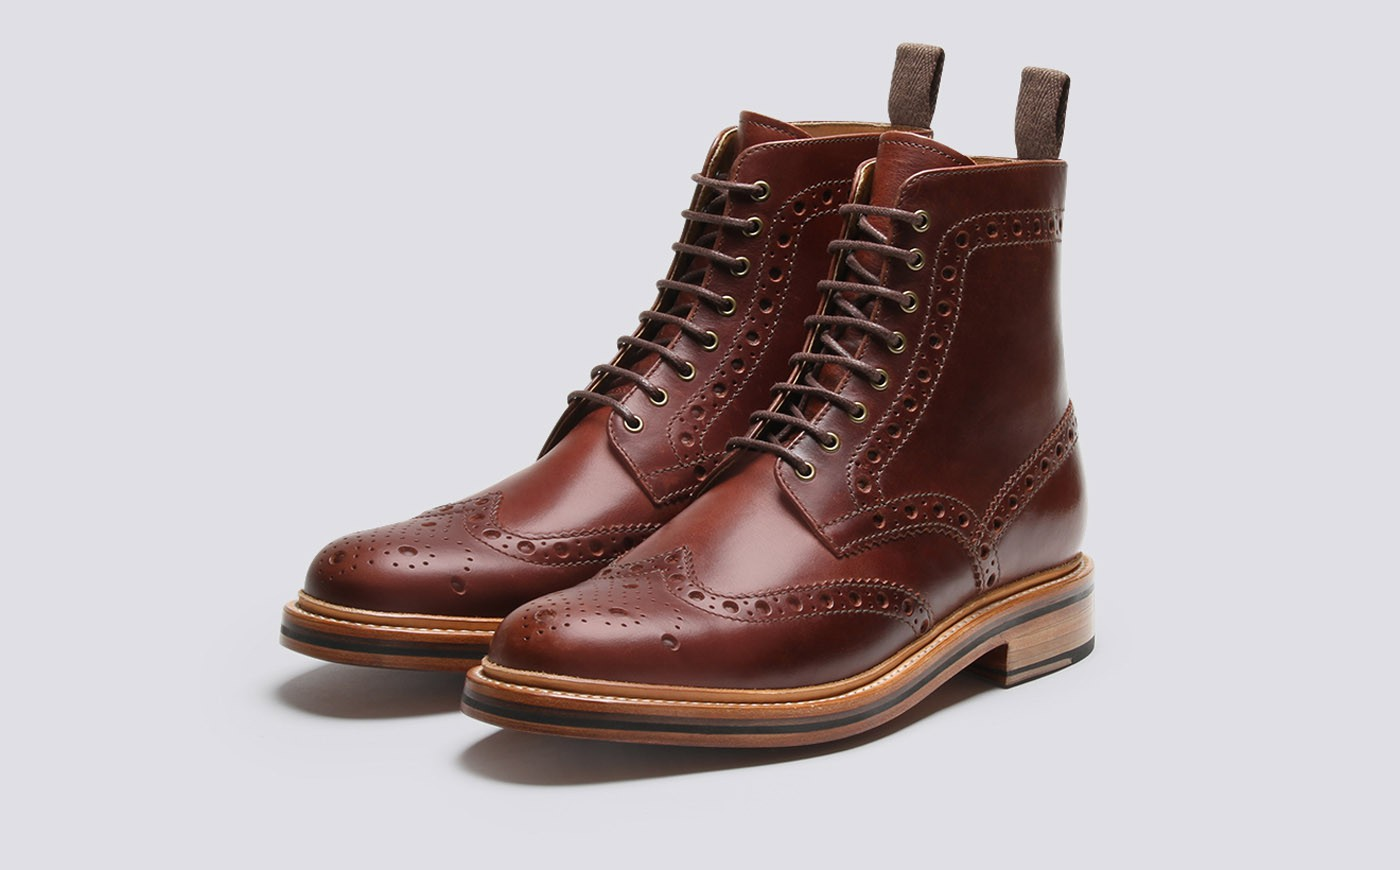 Chad S Drygoods Grenson Shoemakers For 150 Years